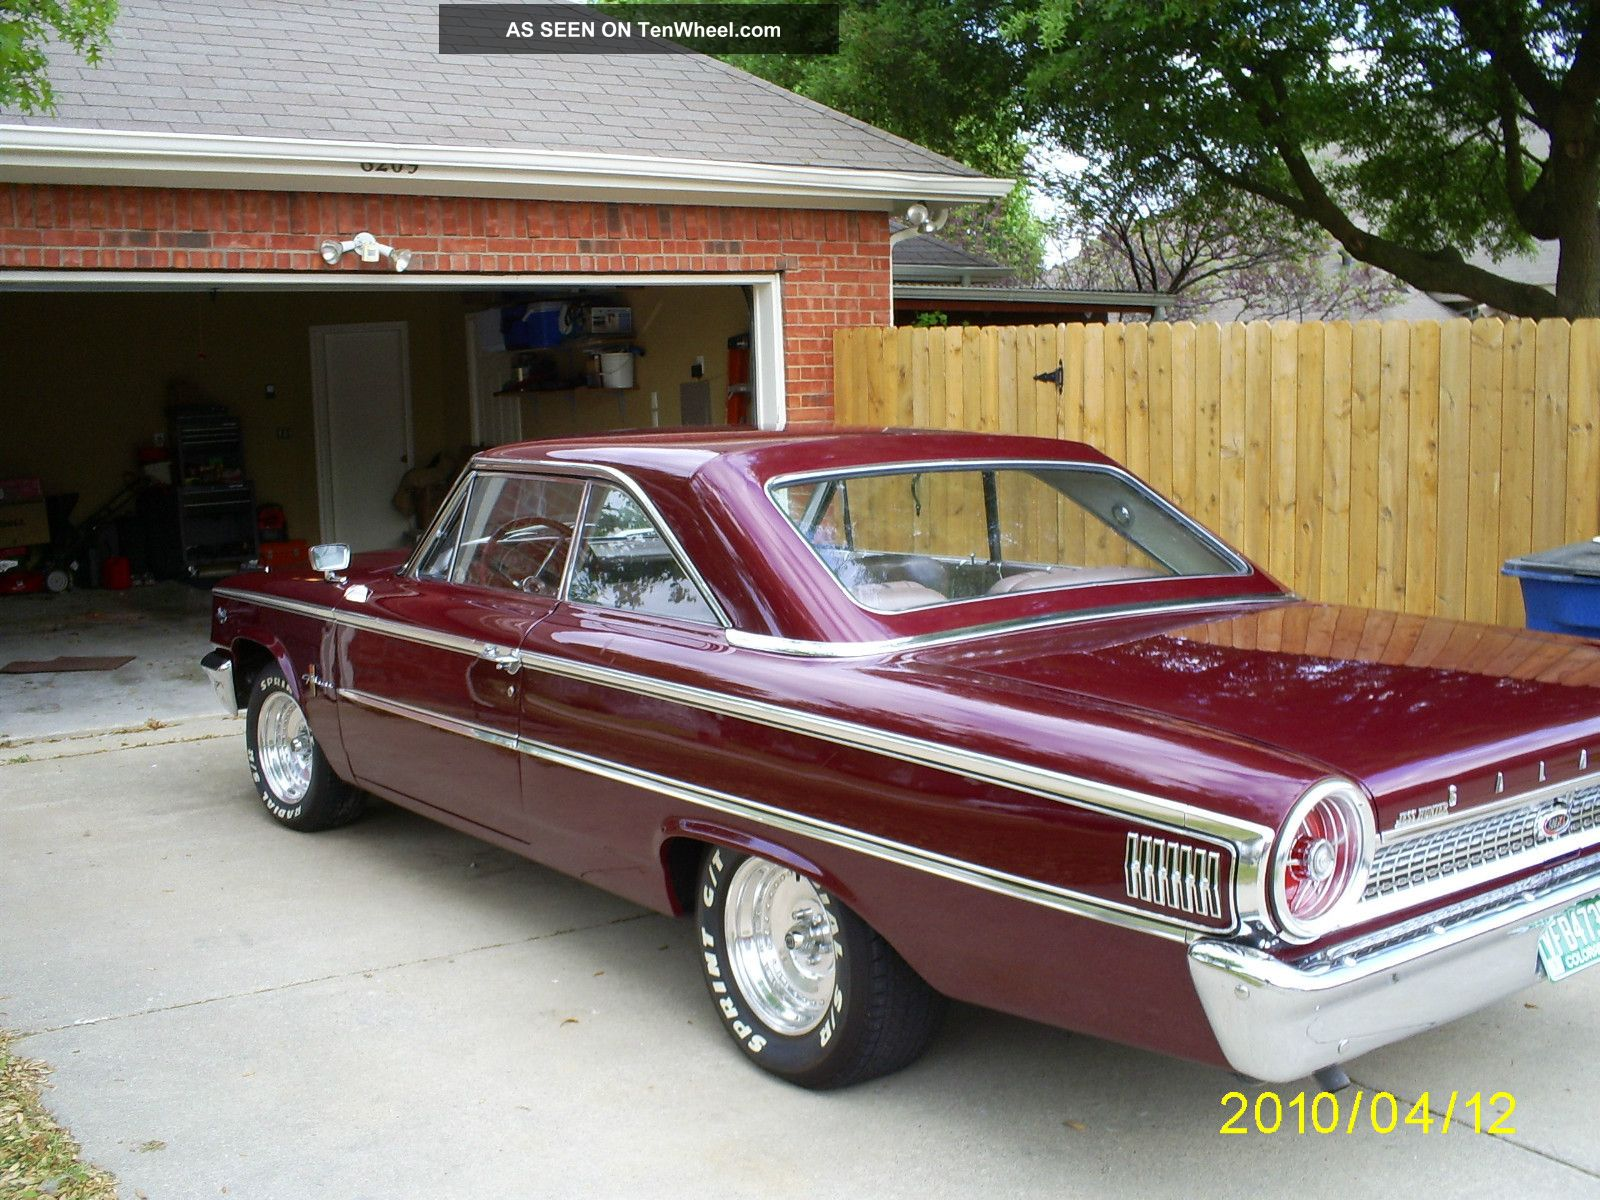 1963 galaxie 500 exterior trim bing images. Black Bedroom Furniture Sets. Home Design Ideas